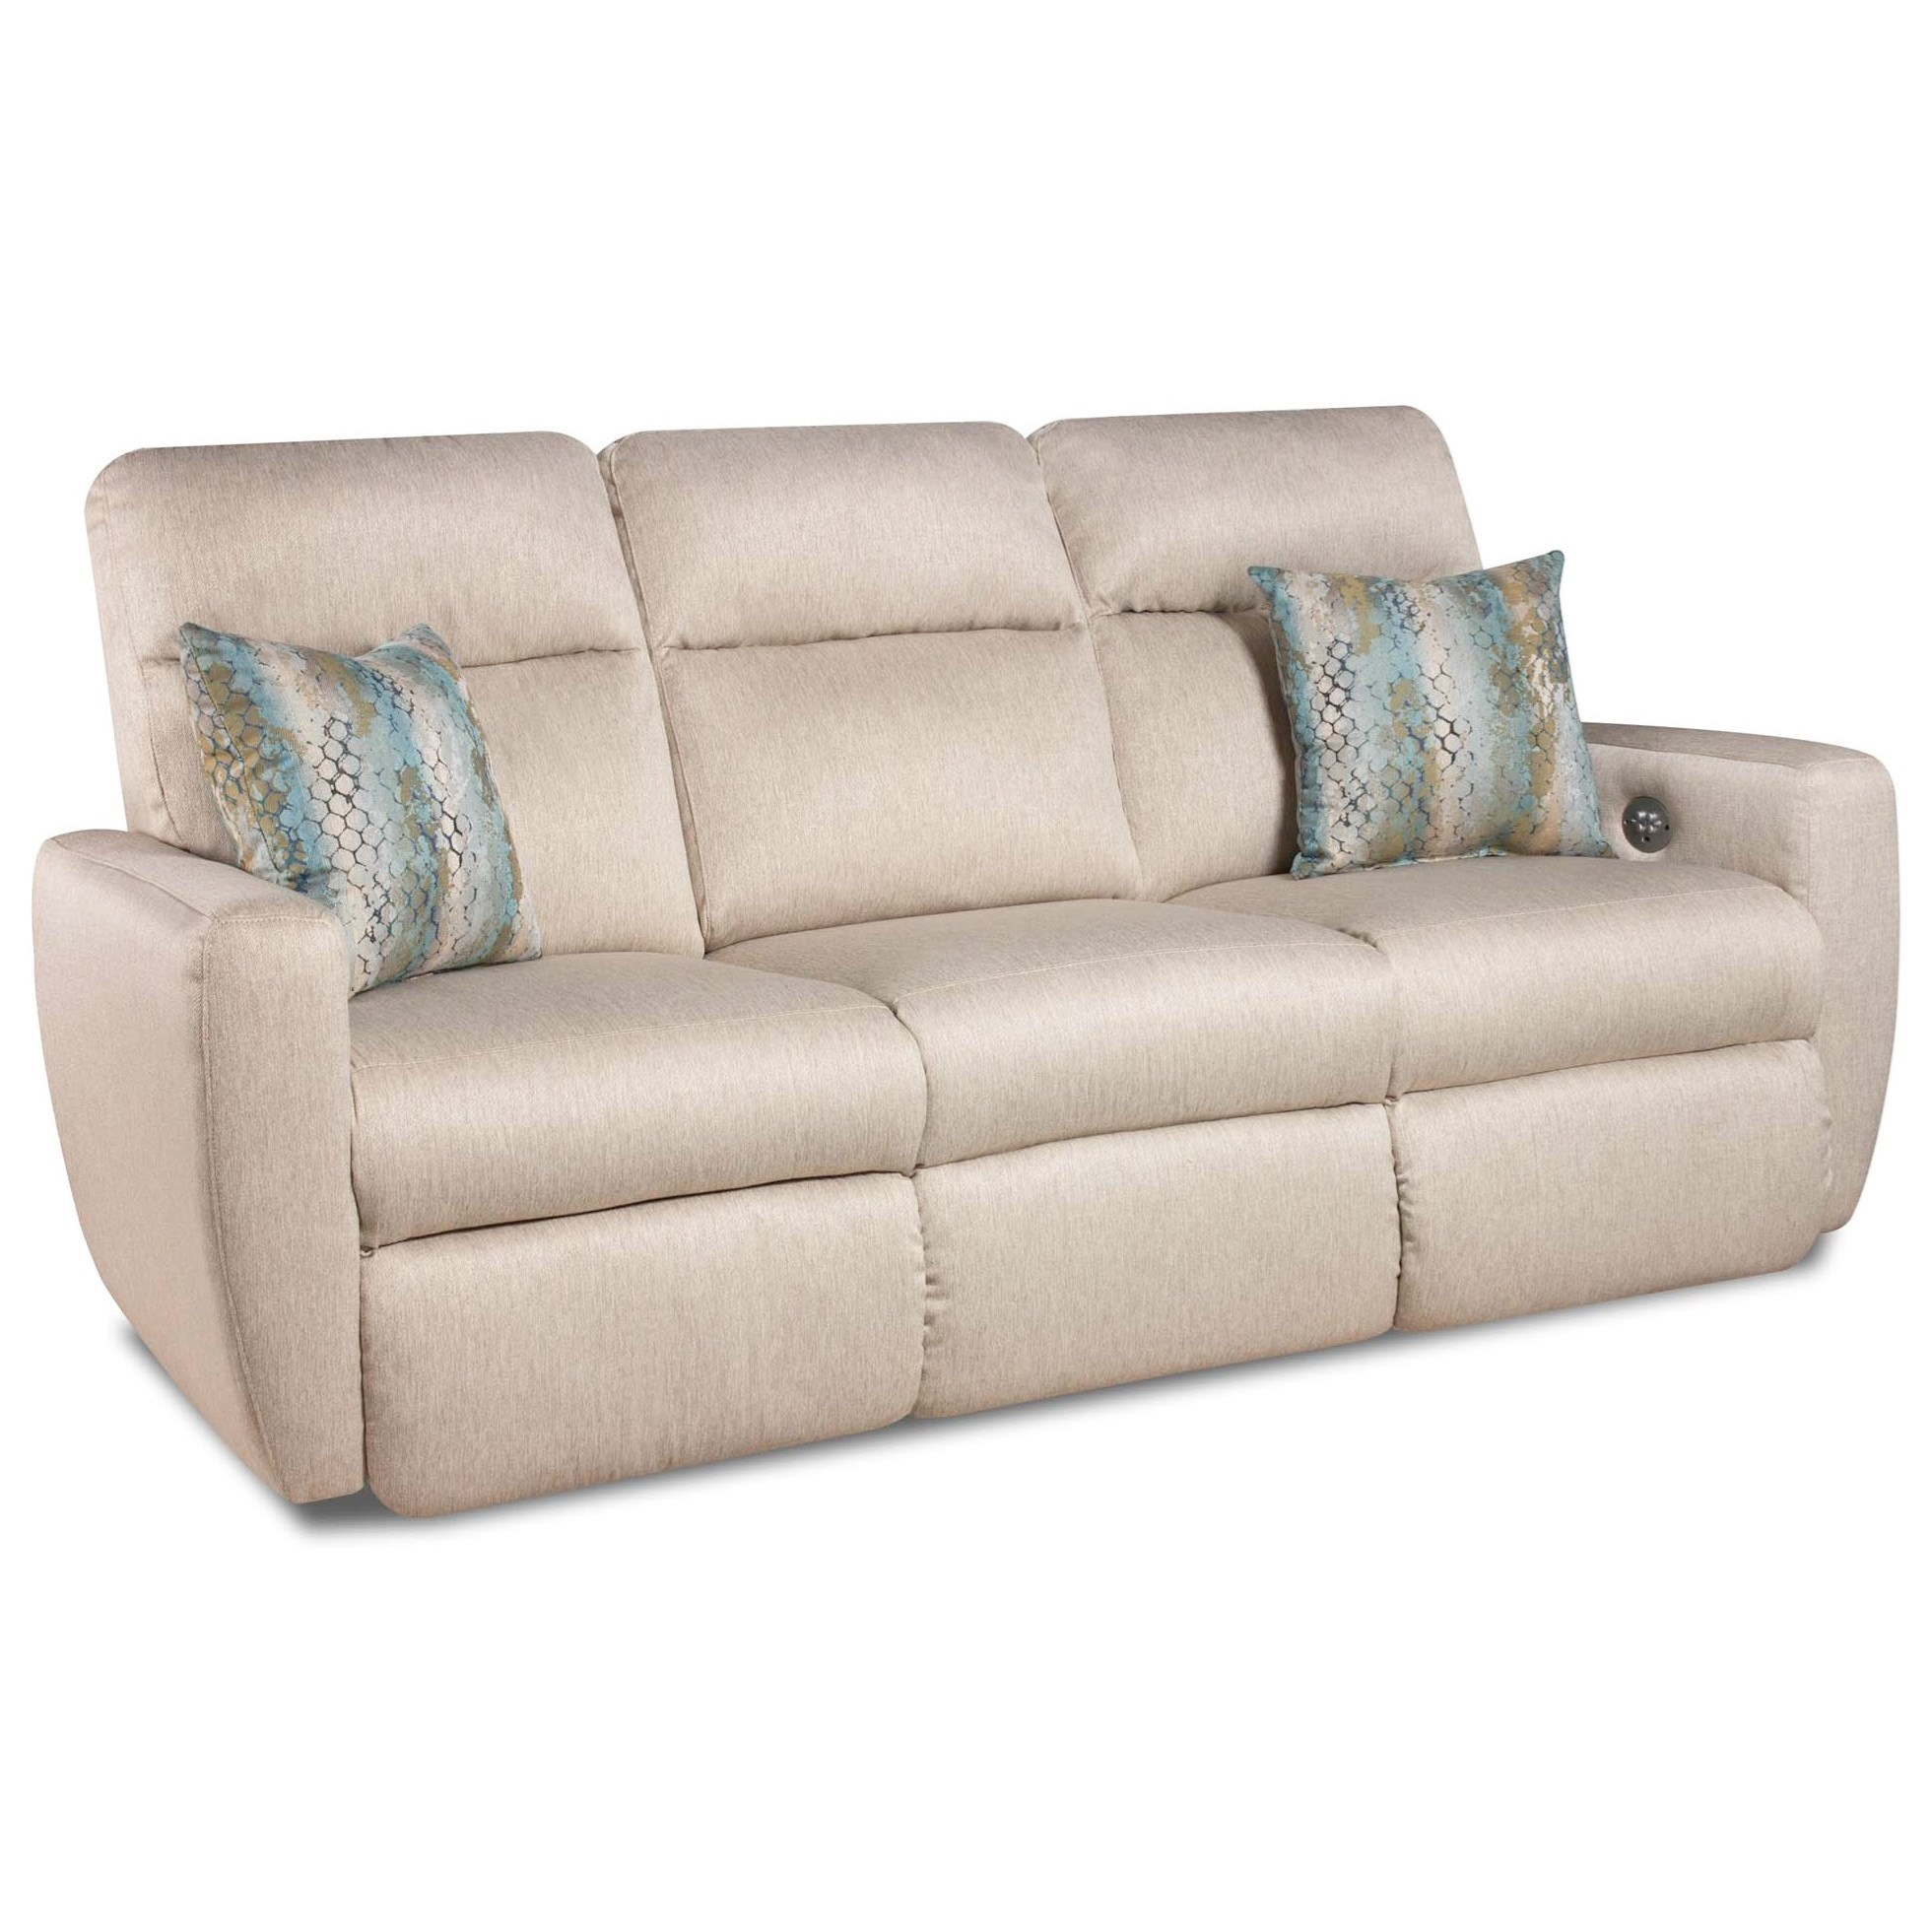 sofa southern motion plastic wrap knock out 865 62p double reclining